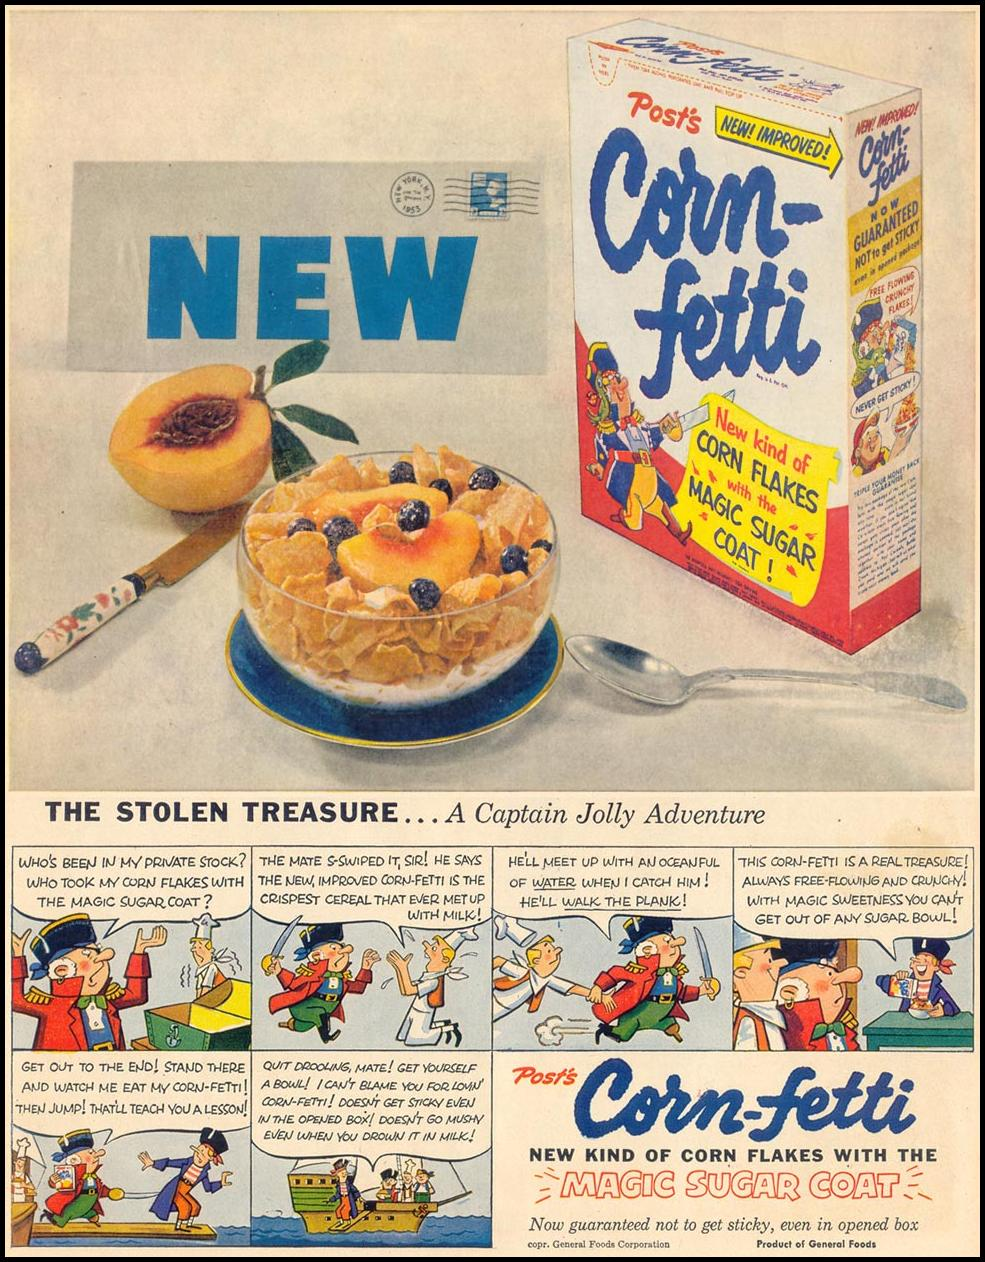 POST CORN-FETTI CEREAL LIFE 04/13/1953 p. 49